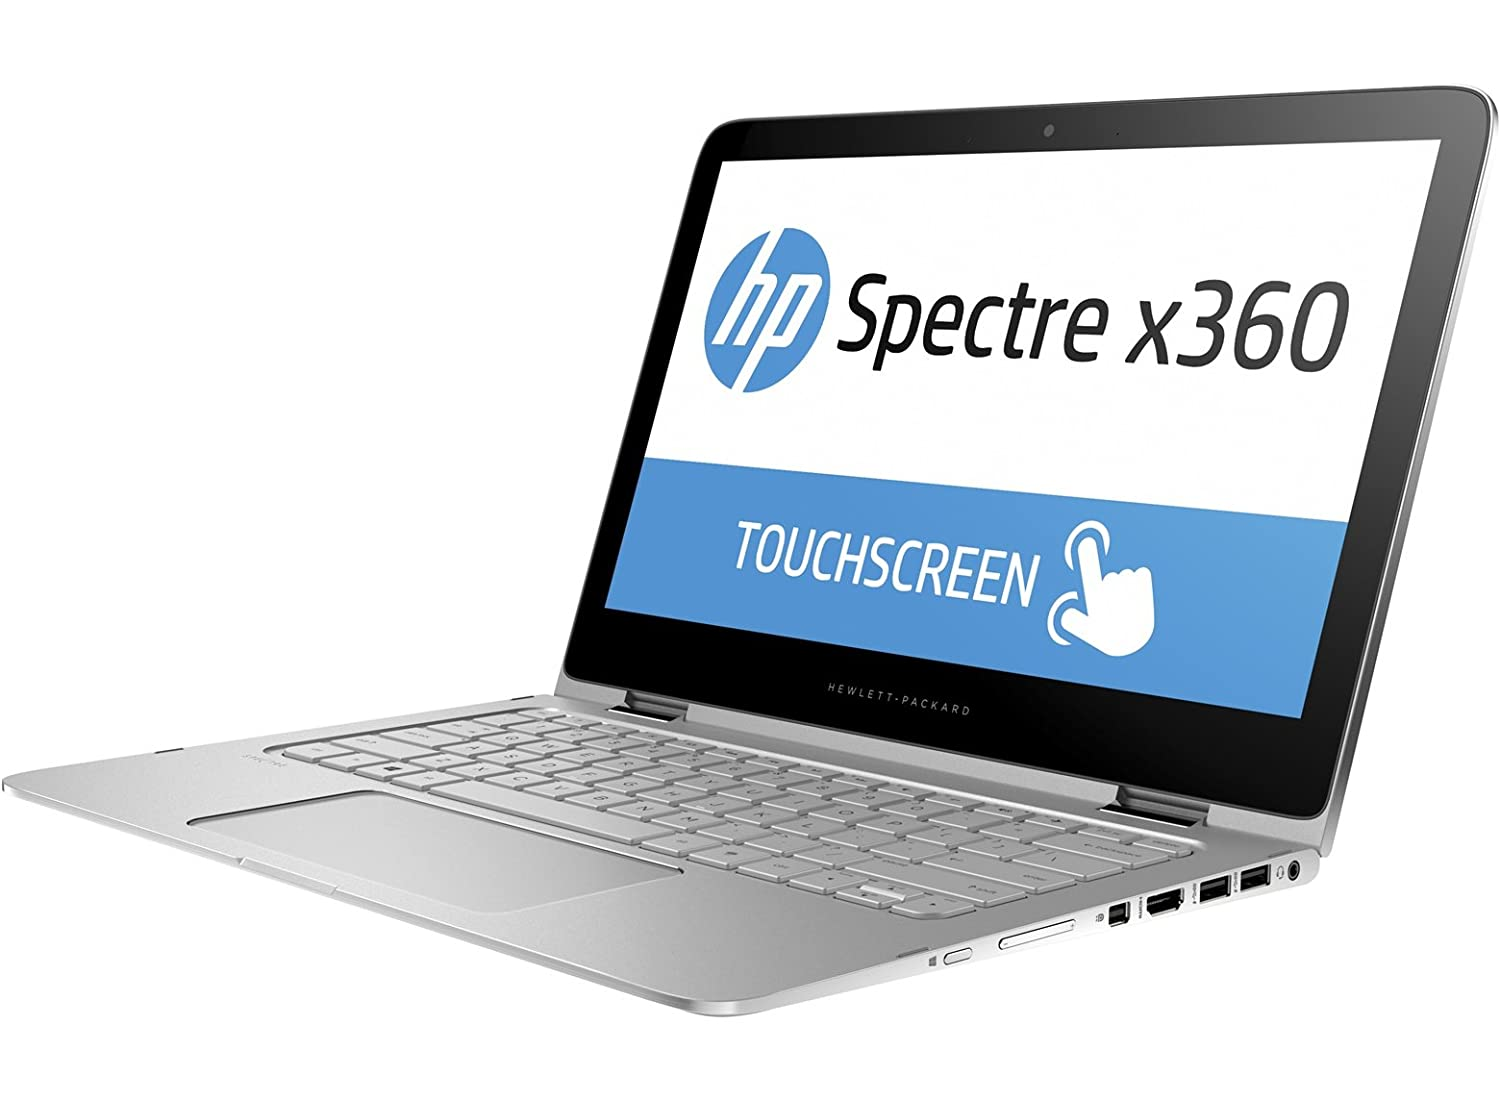 HP Spectre x360 13-4005dx Signature Edition 2-in-1 PC - 13.3